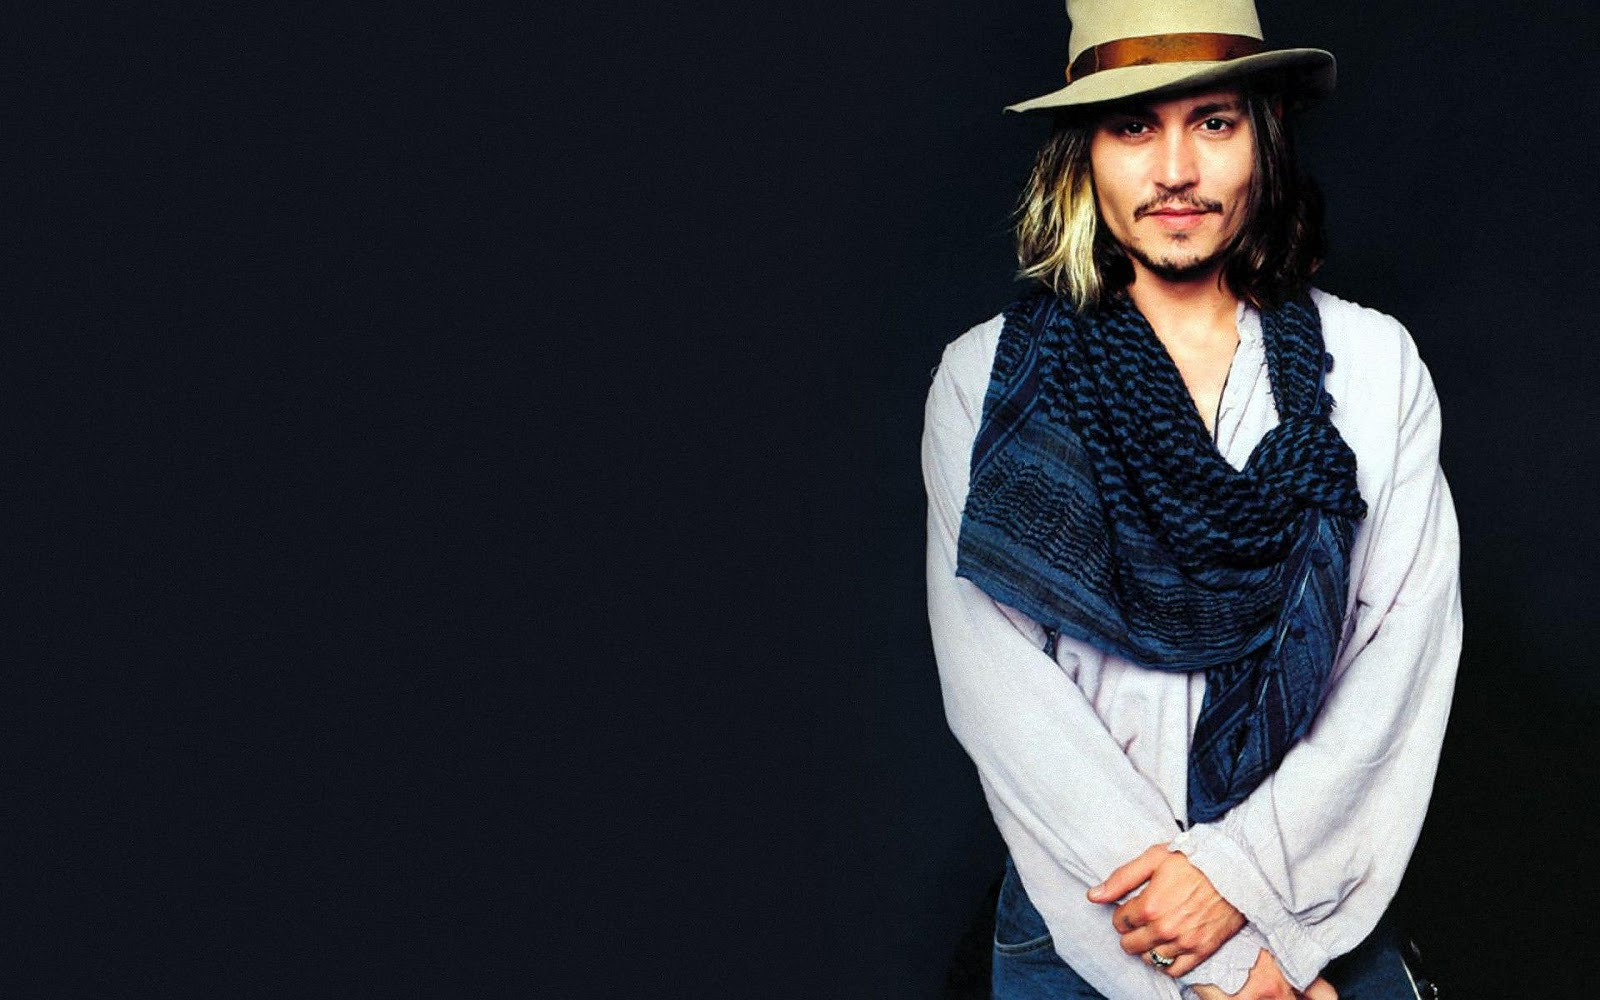 Johnny Depp Wallpapers Johnny Depp Wallpapers Best HD Desktop Wallpaper